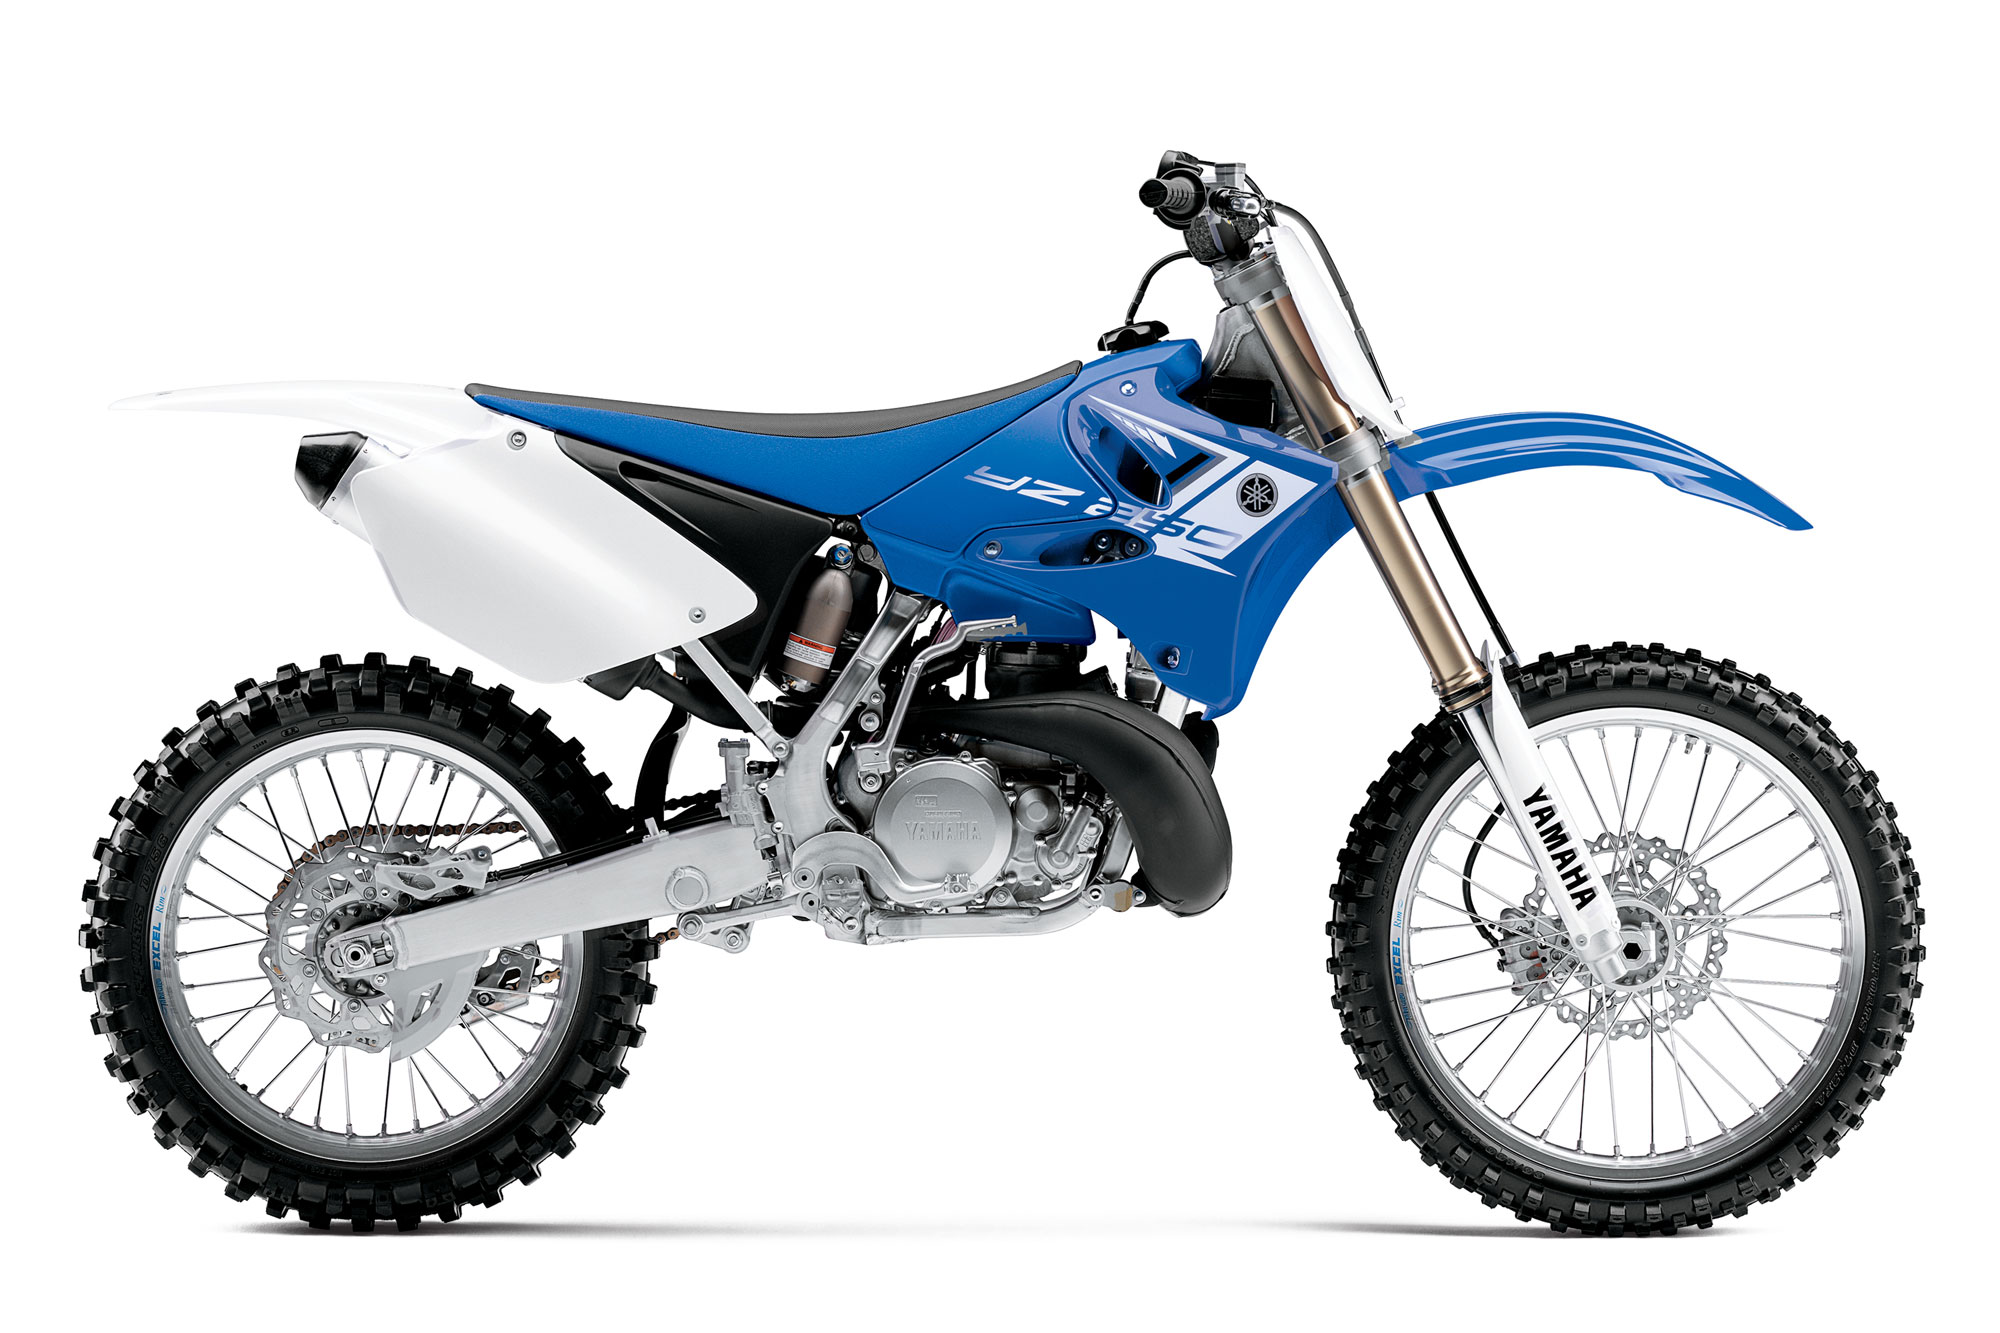 2013 yamaha yz250 2 stroke review for Yamaha 250 four stroke